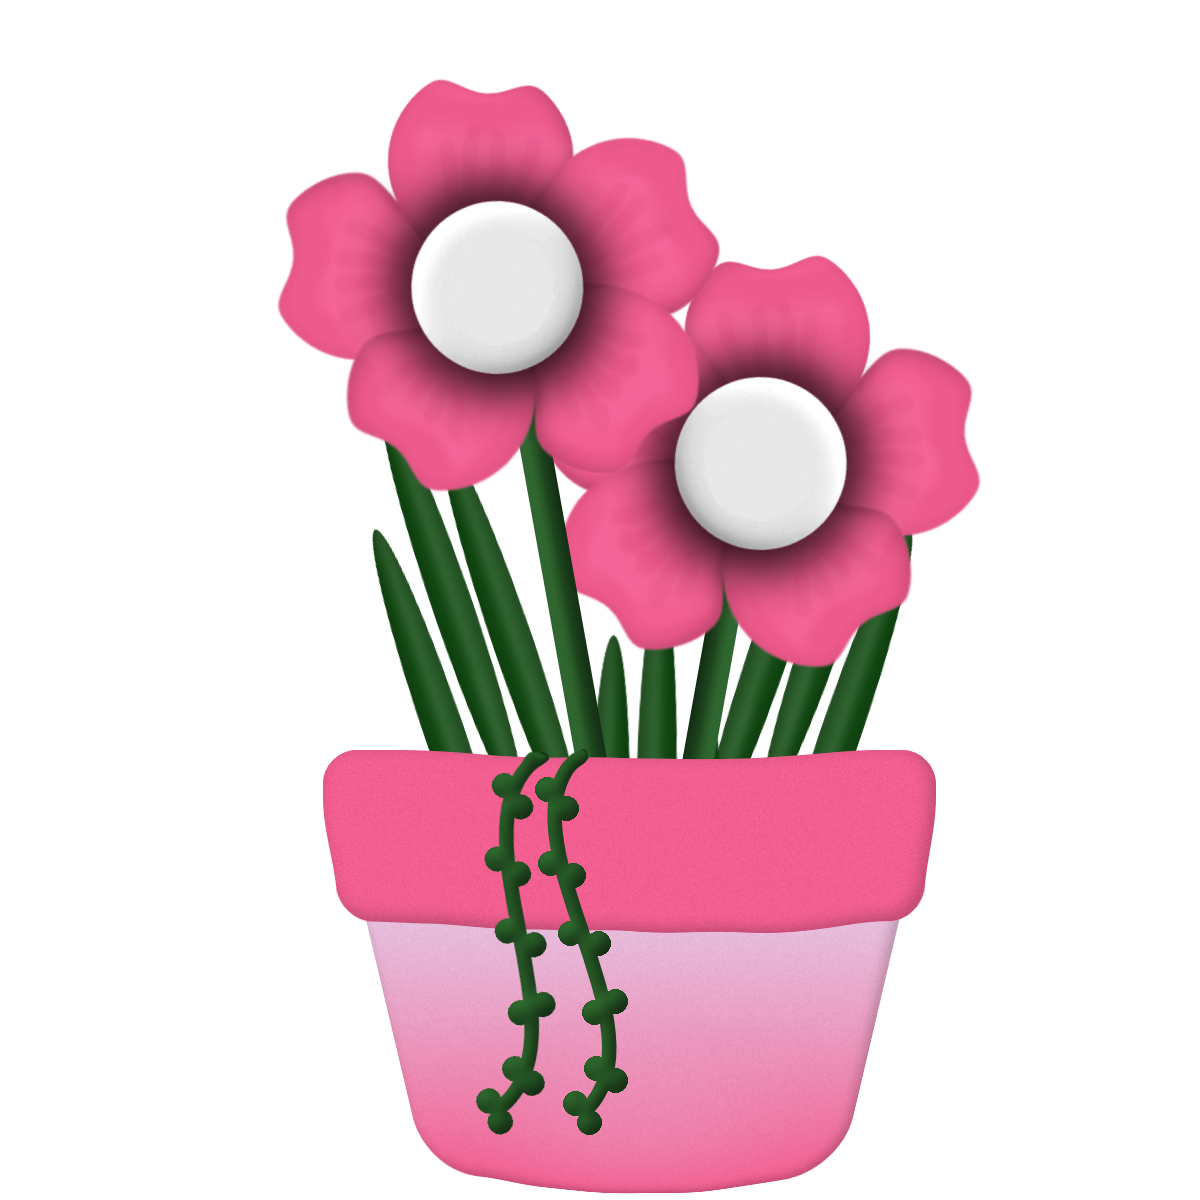 d ab ca. Gardening clipart agricultural science